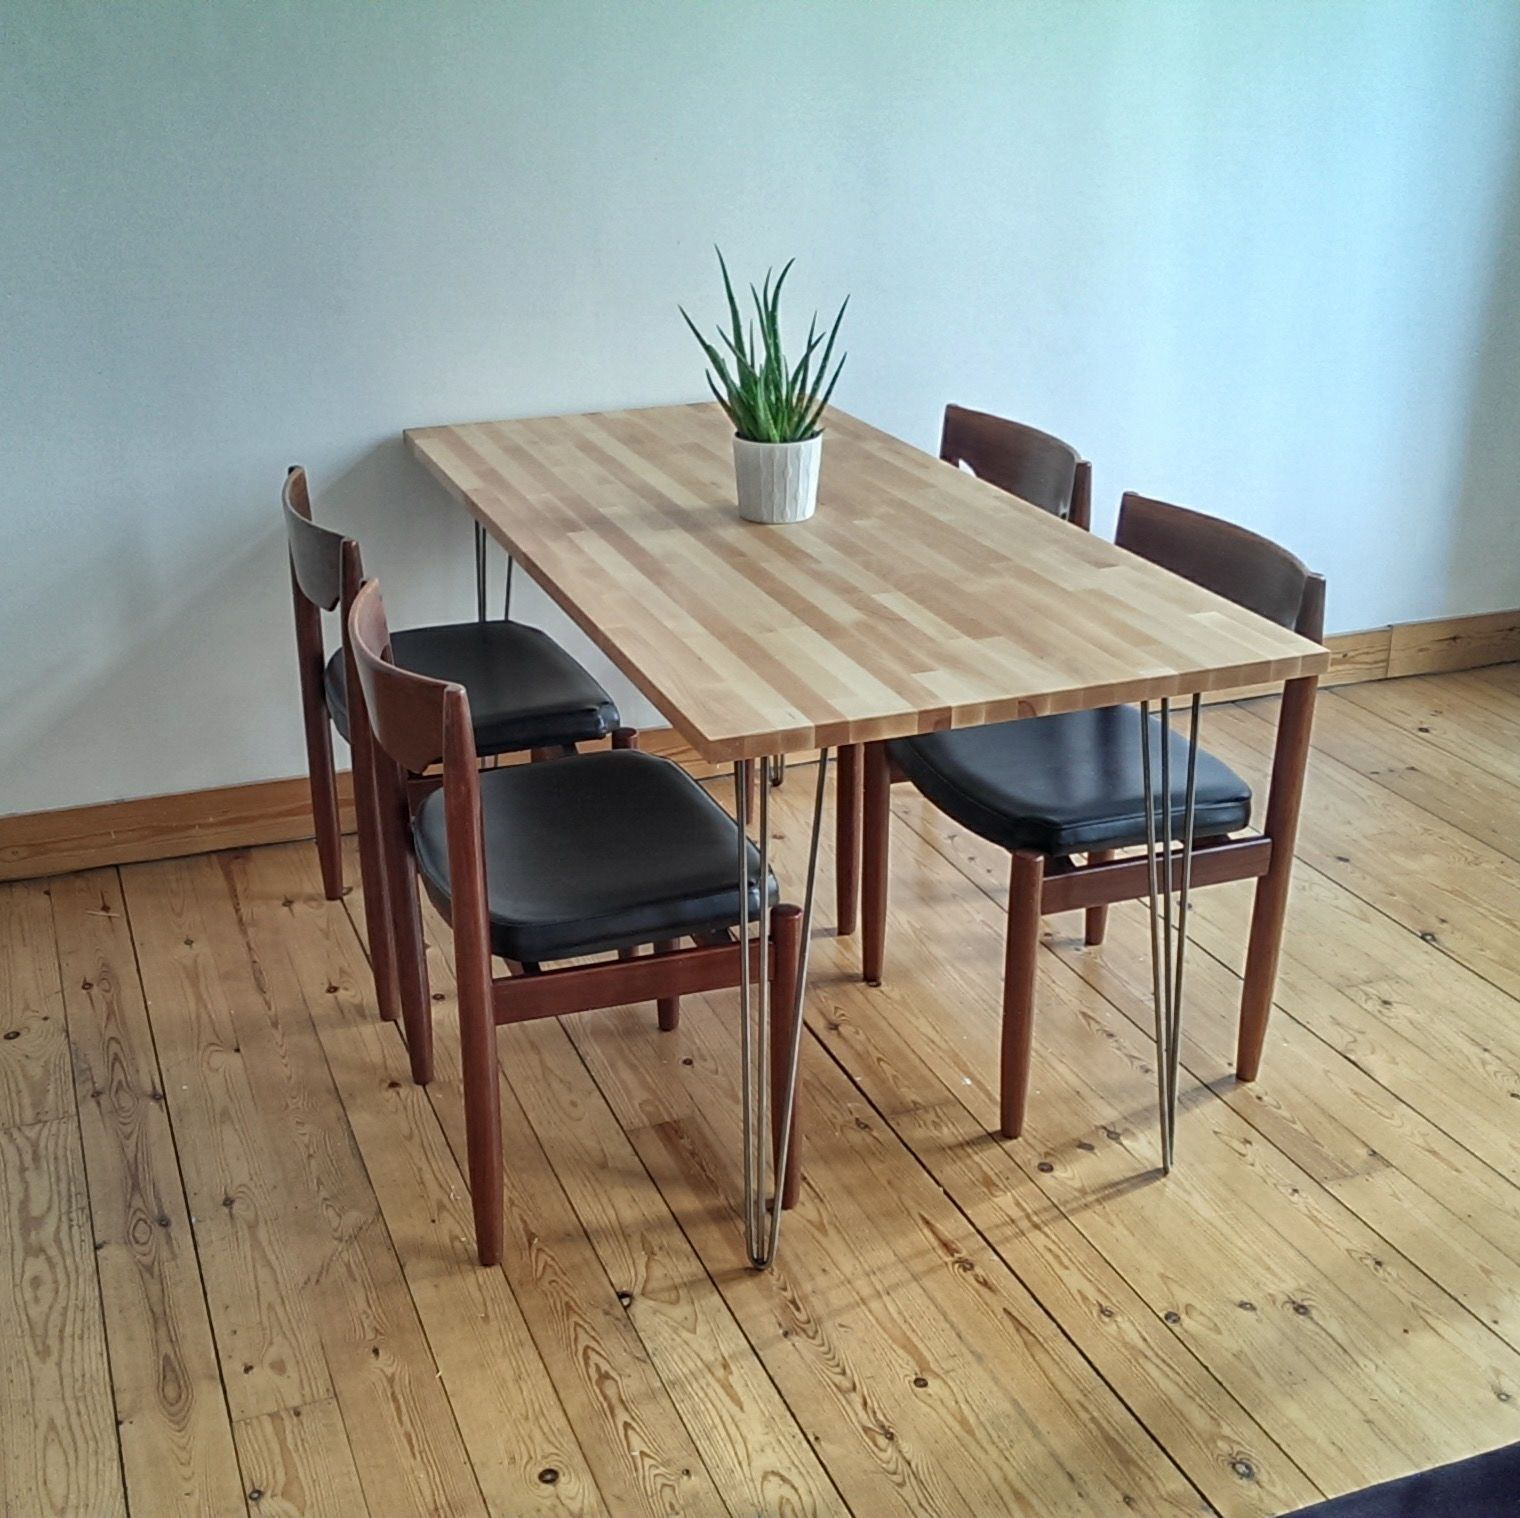 Our Scandinavian Style Dining Table I Made With An Ikea